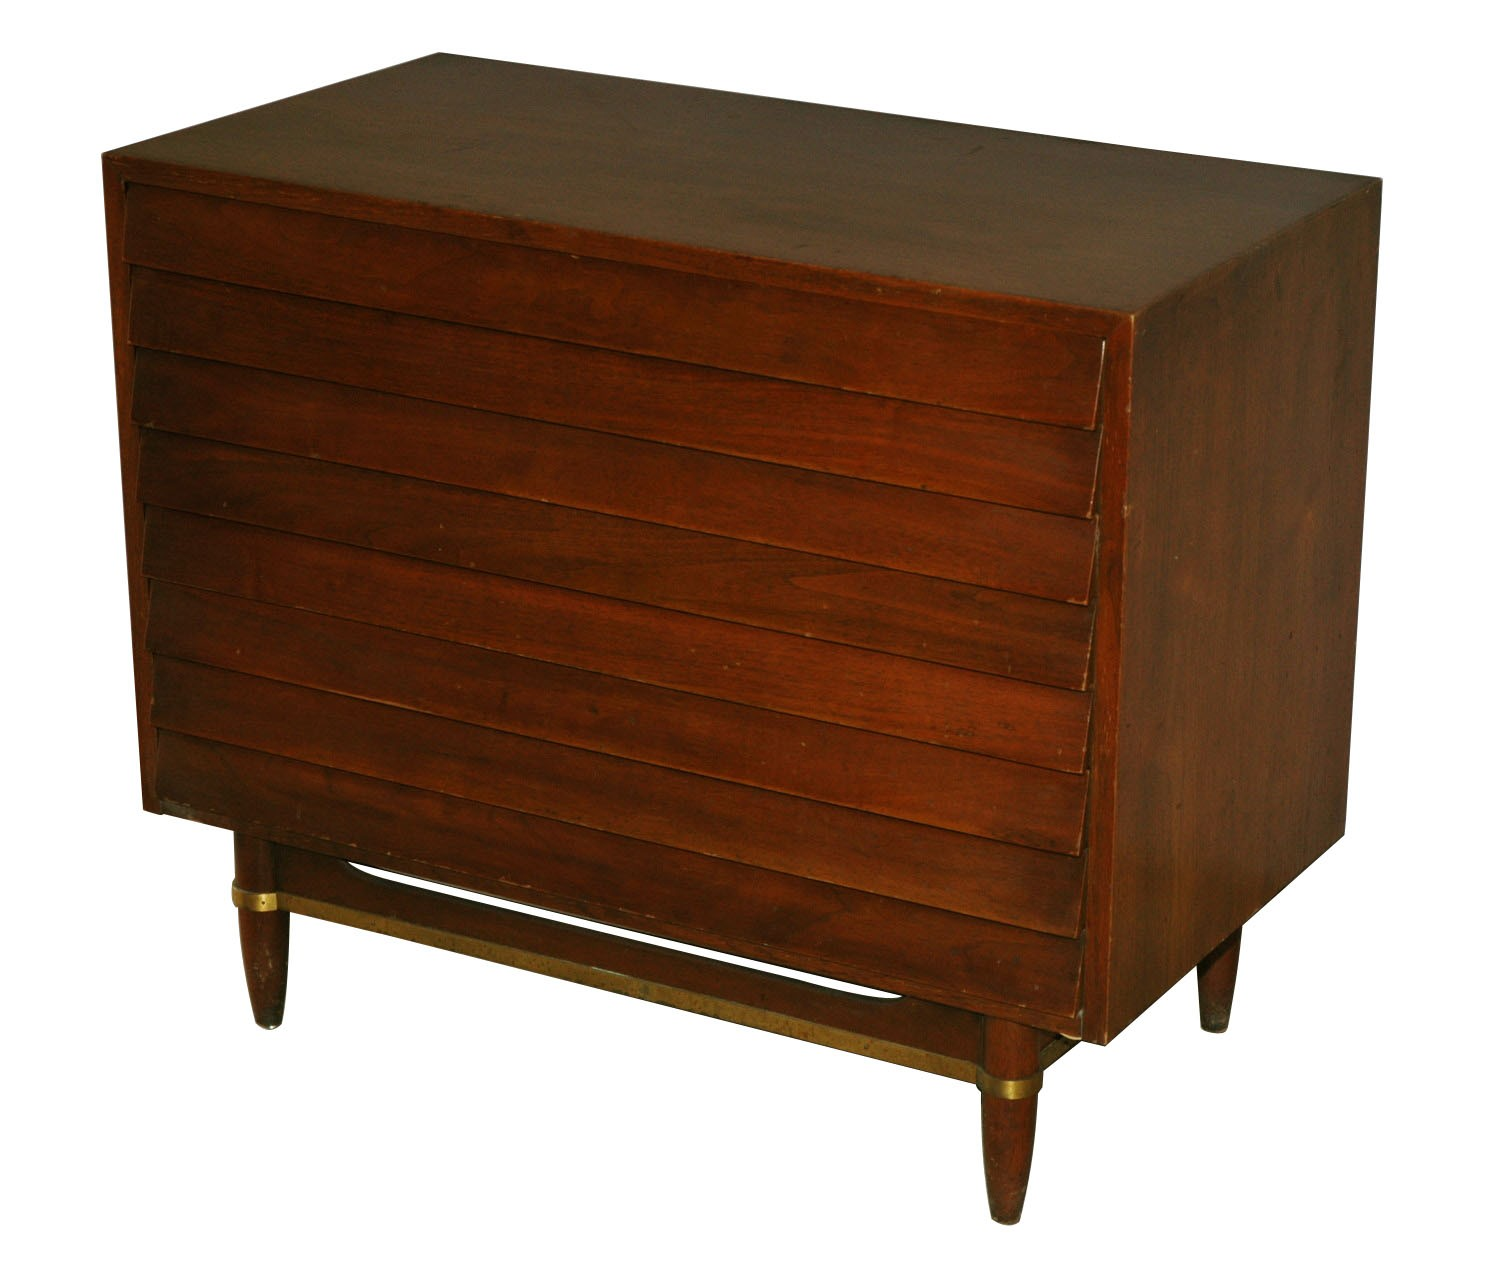 American Of Martinsville Bedroom Furniture Mad For Mid Century More American Of Martinsville Info